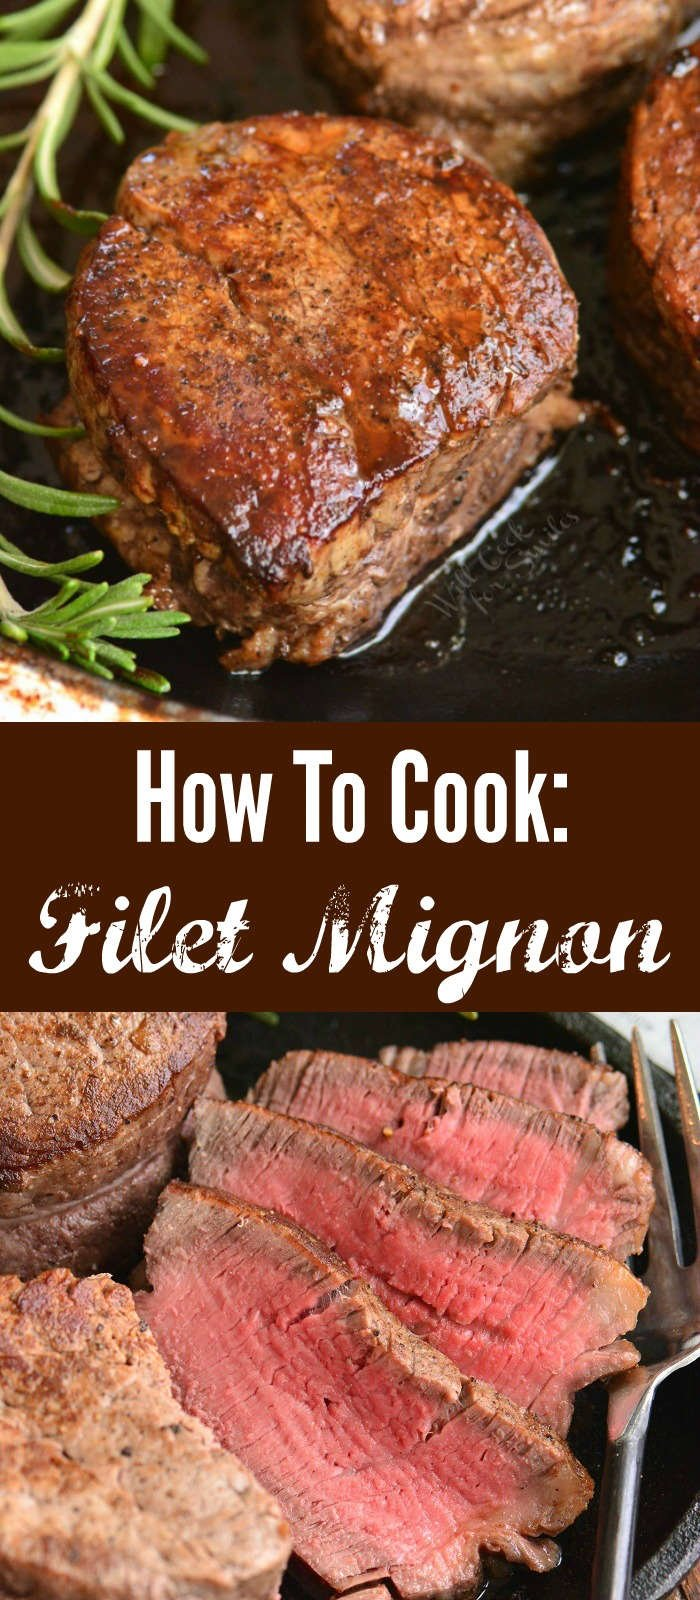 collage of cooked filet mignon steaks